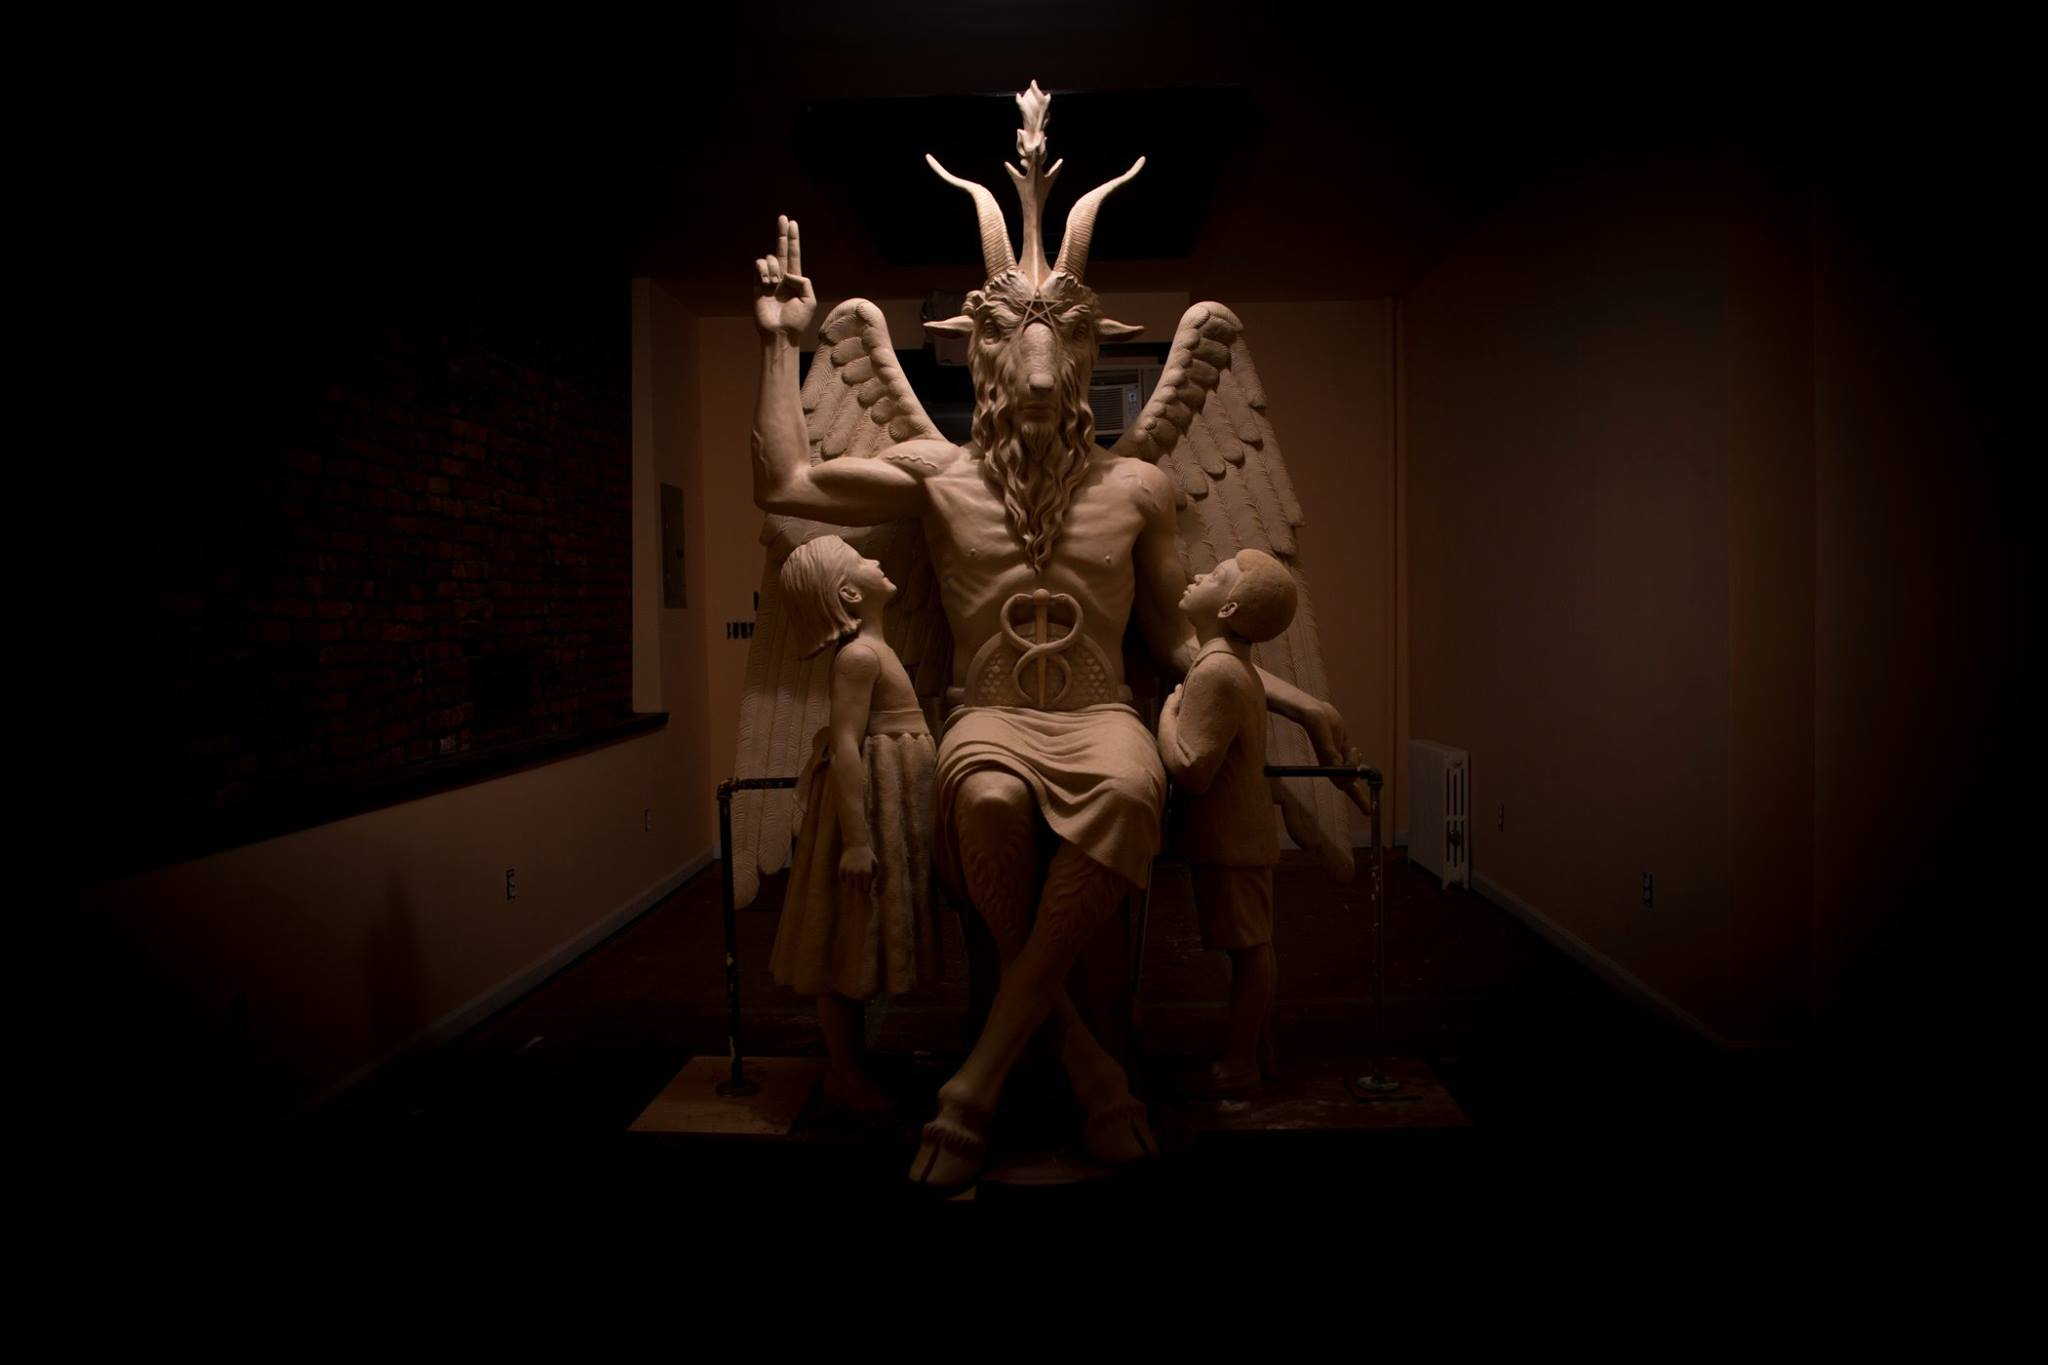 The satanic temple baphomet statue unveiling in detroit bap5417546d83689 bap104983364708450297181857862353721865753710o bap114280726482162486477282327919871922545564n buycottarizona Image collections